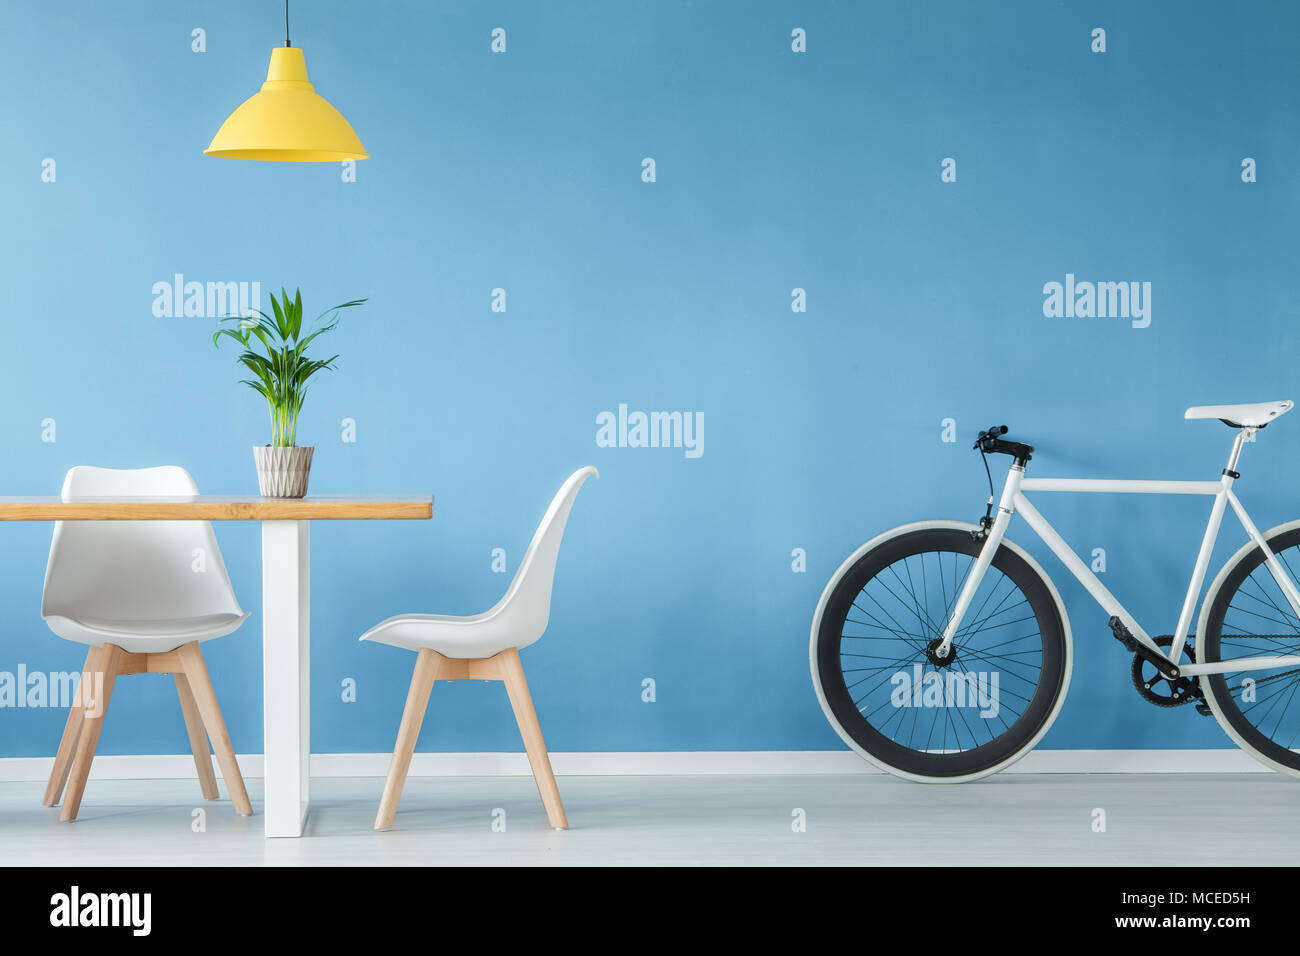 Minimal, modern interior with two chairs, a bicycle, a table with a plant on it and a yellow lamp above, against blue wall - Stock Image